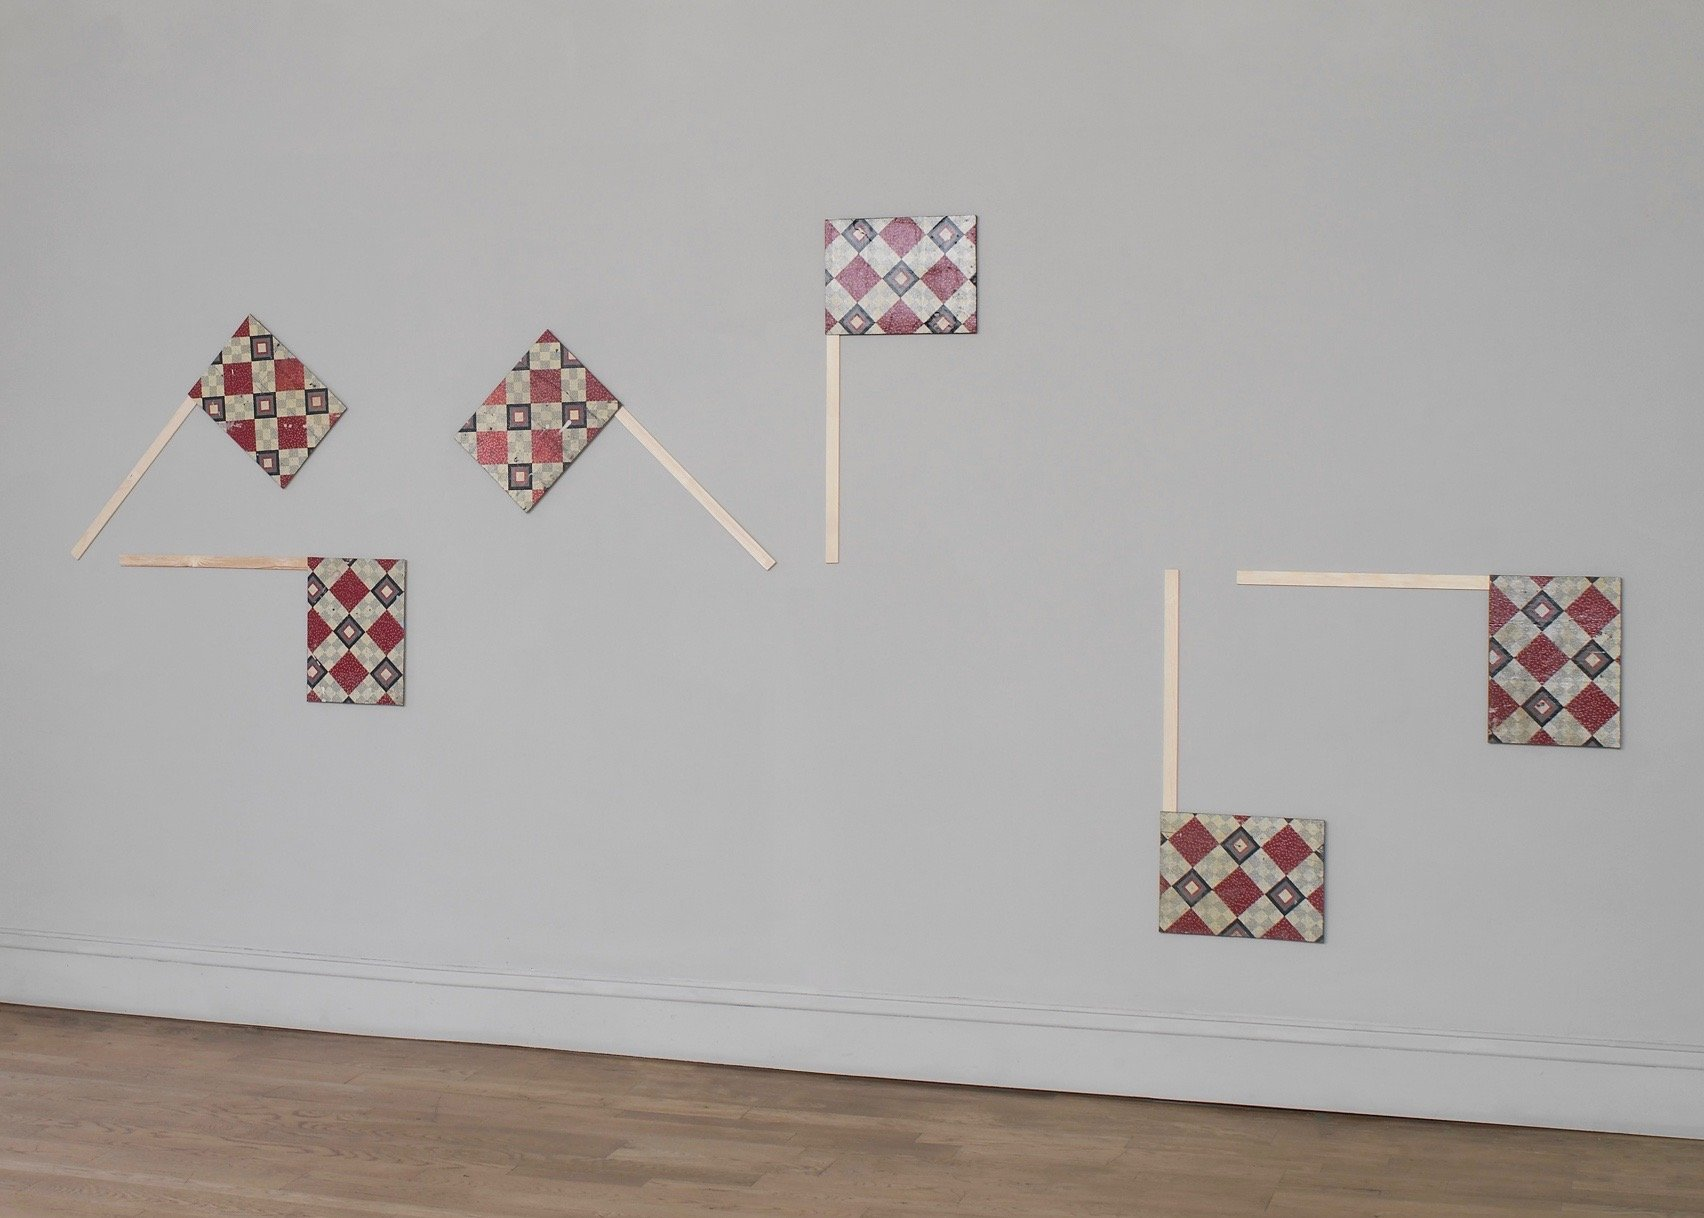 nicky-hirst-real-size-domobaal-mod-13.jpg